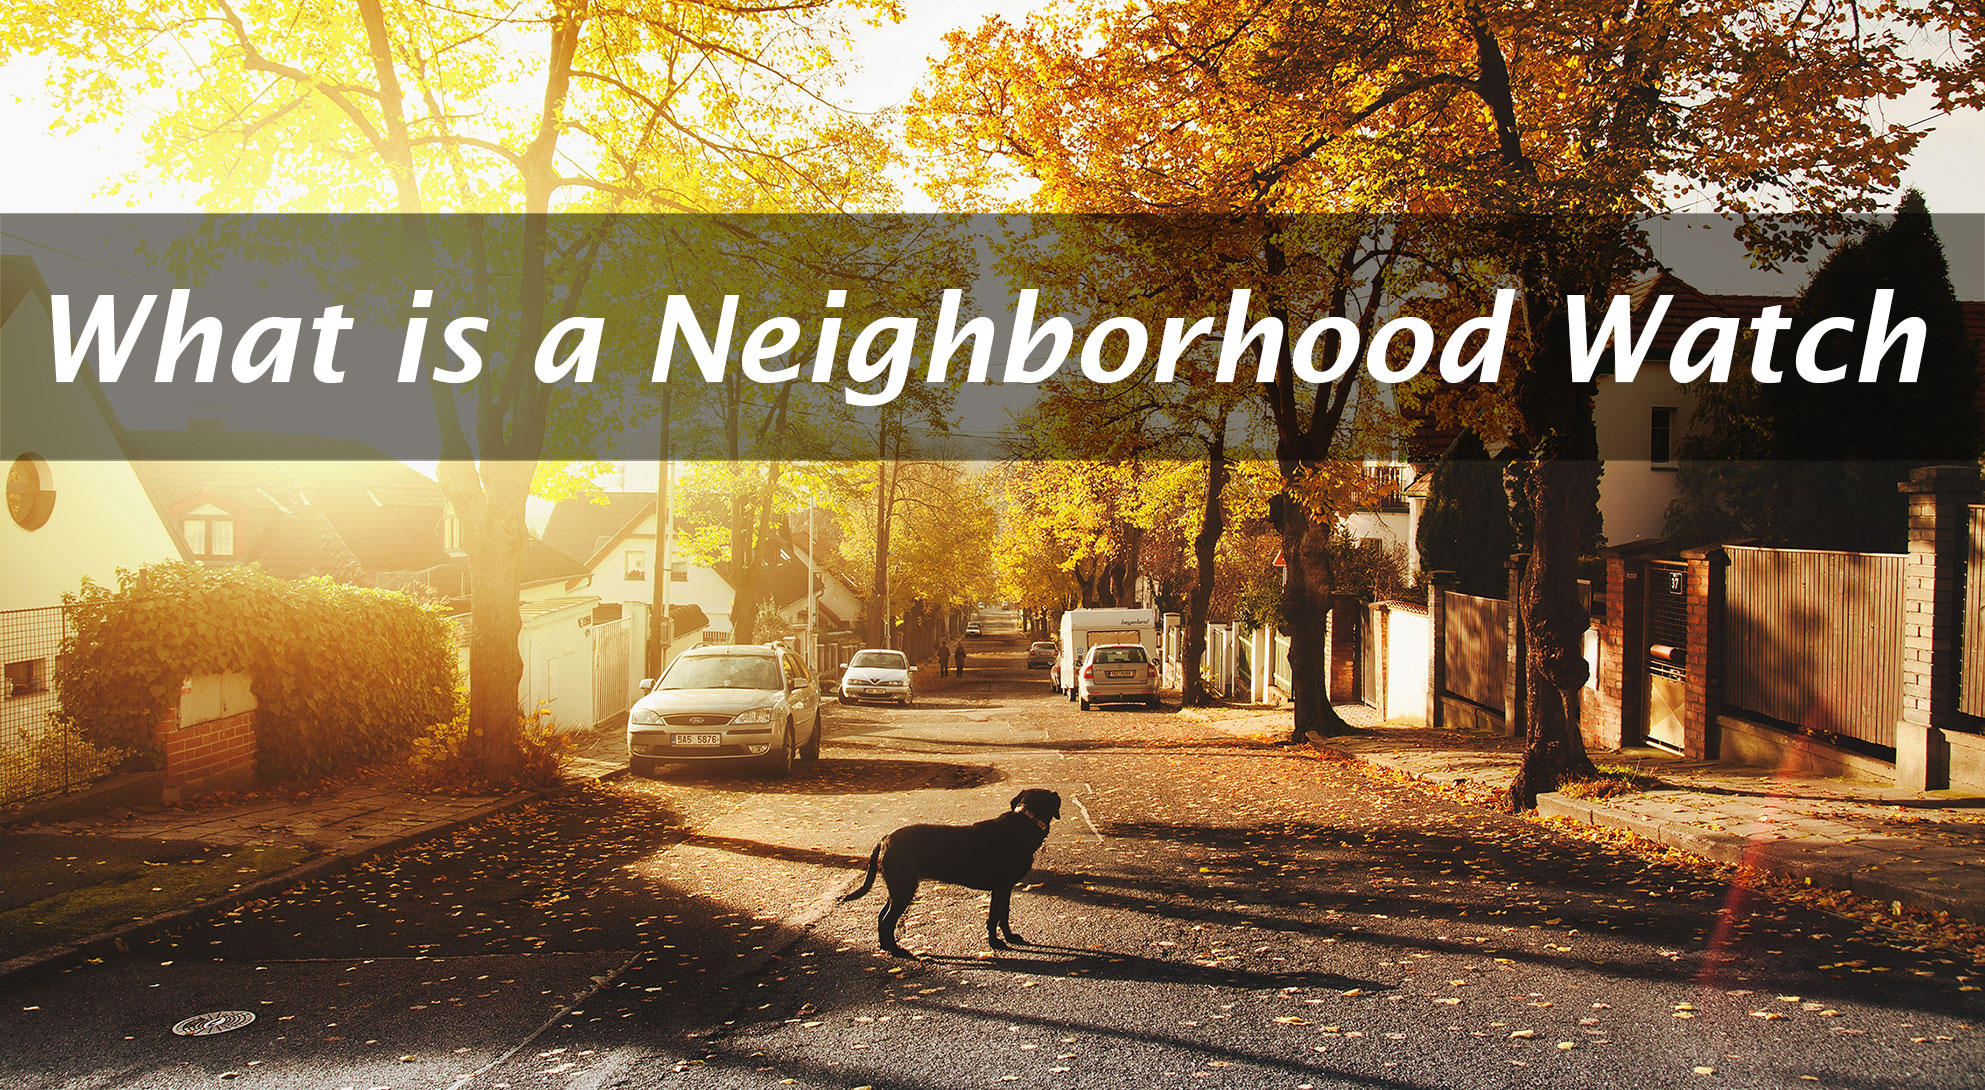 What is a Neighborhood Watch